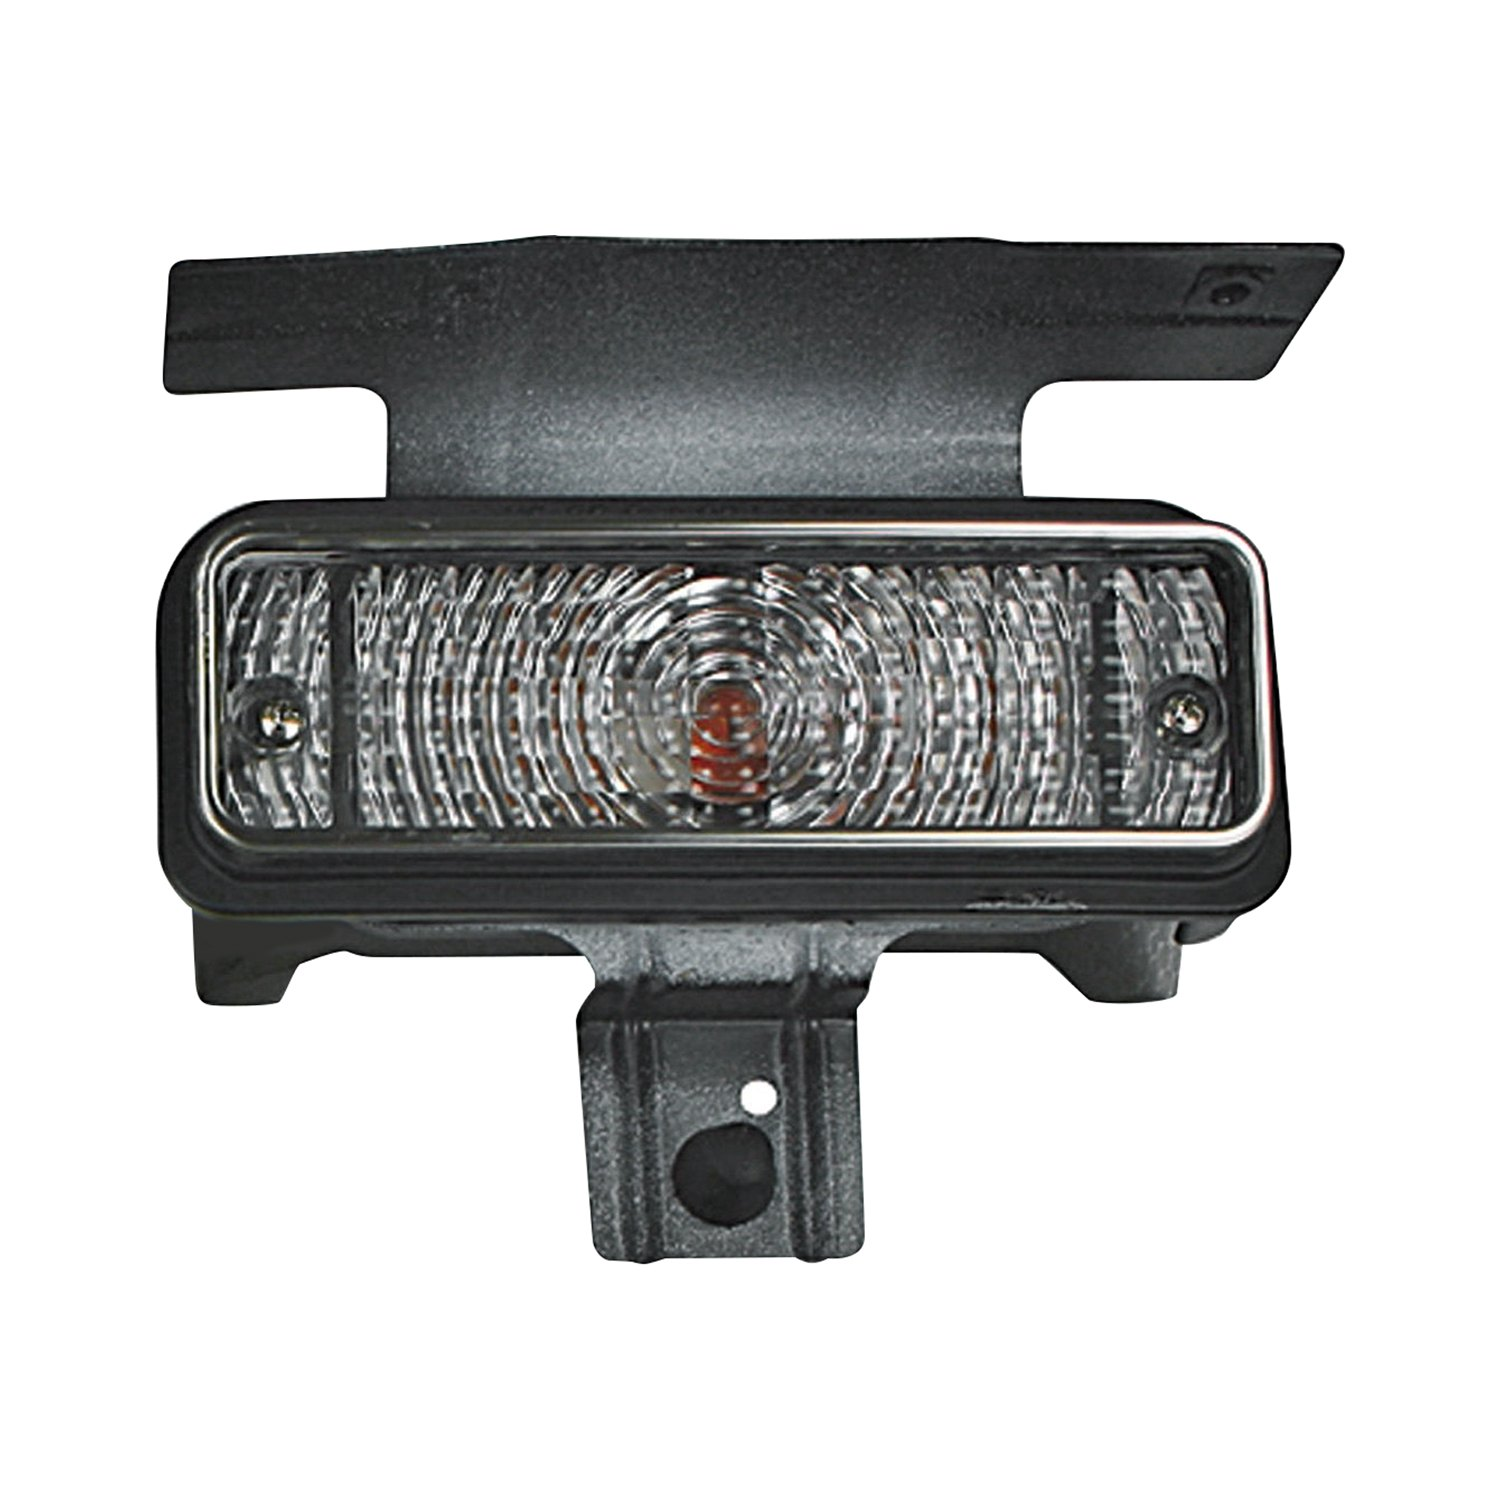 Parking Garage Light Signals: Chevy Chevelle 1969 Replacement Turn Signal